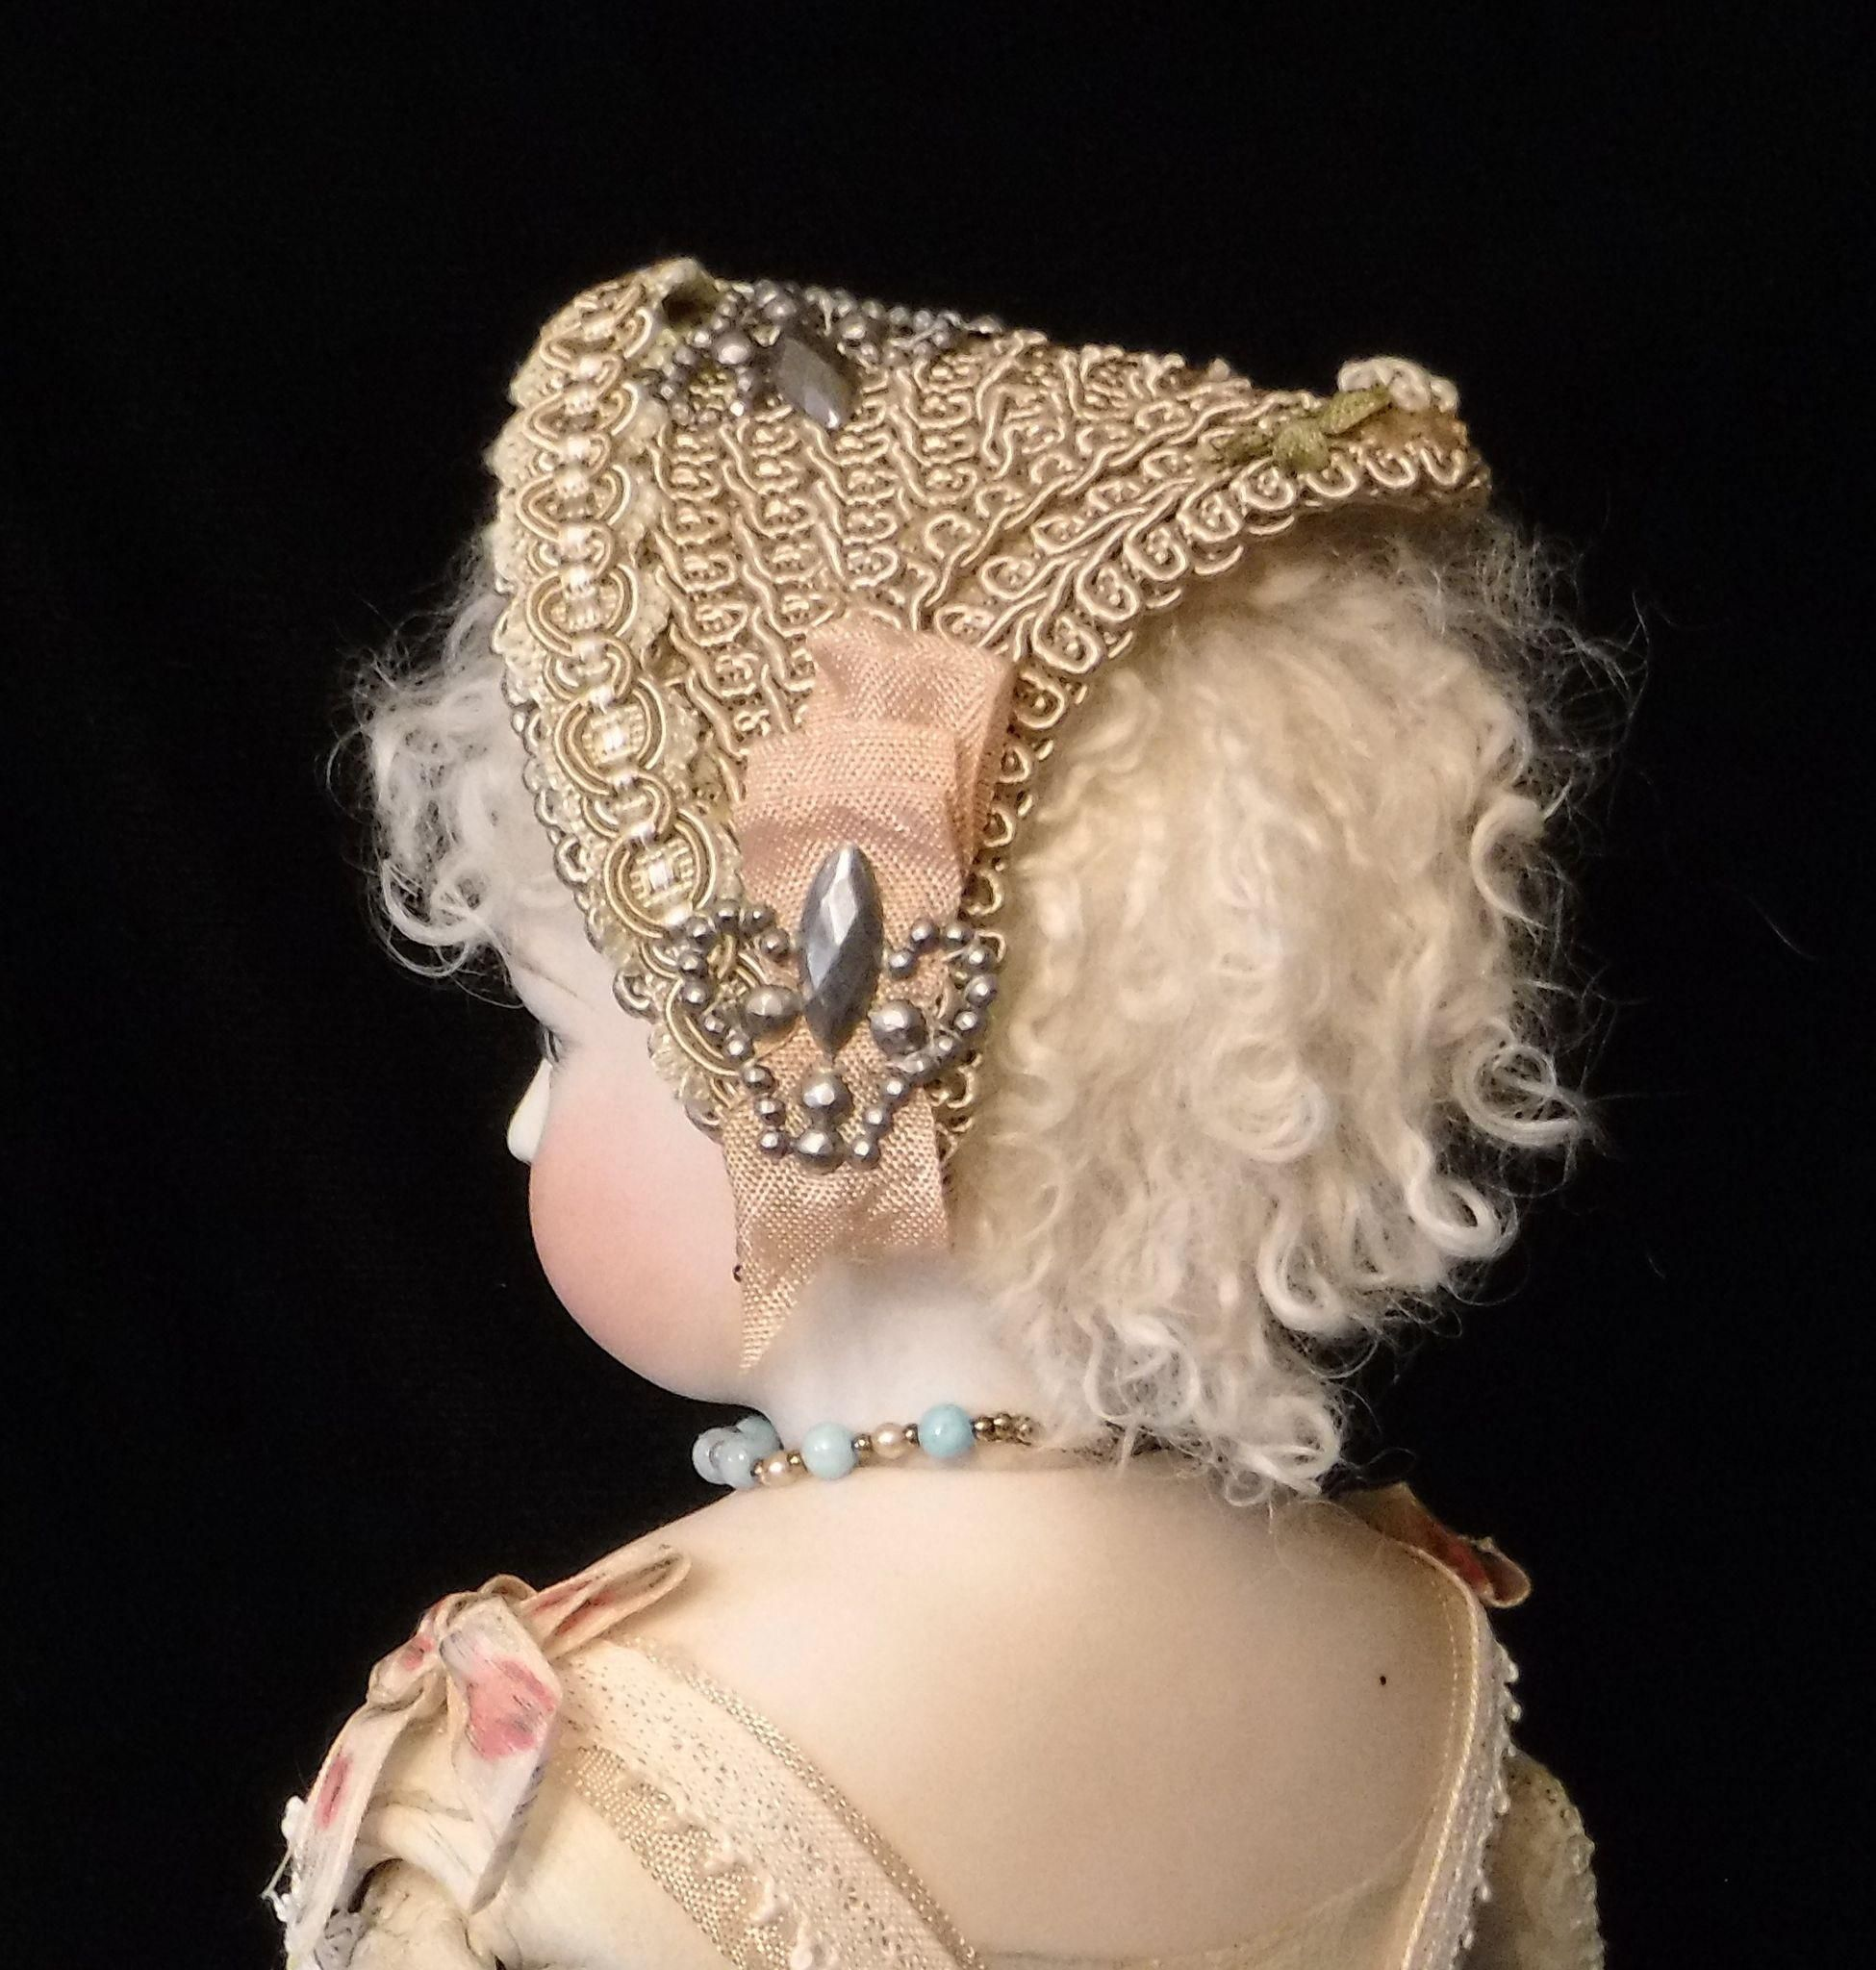 French Fashion Doll Hat #dollhats